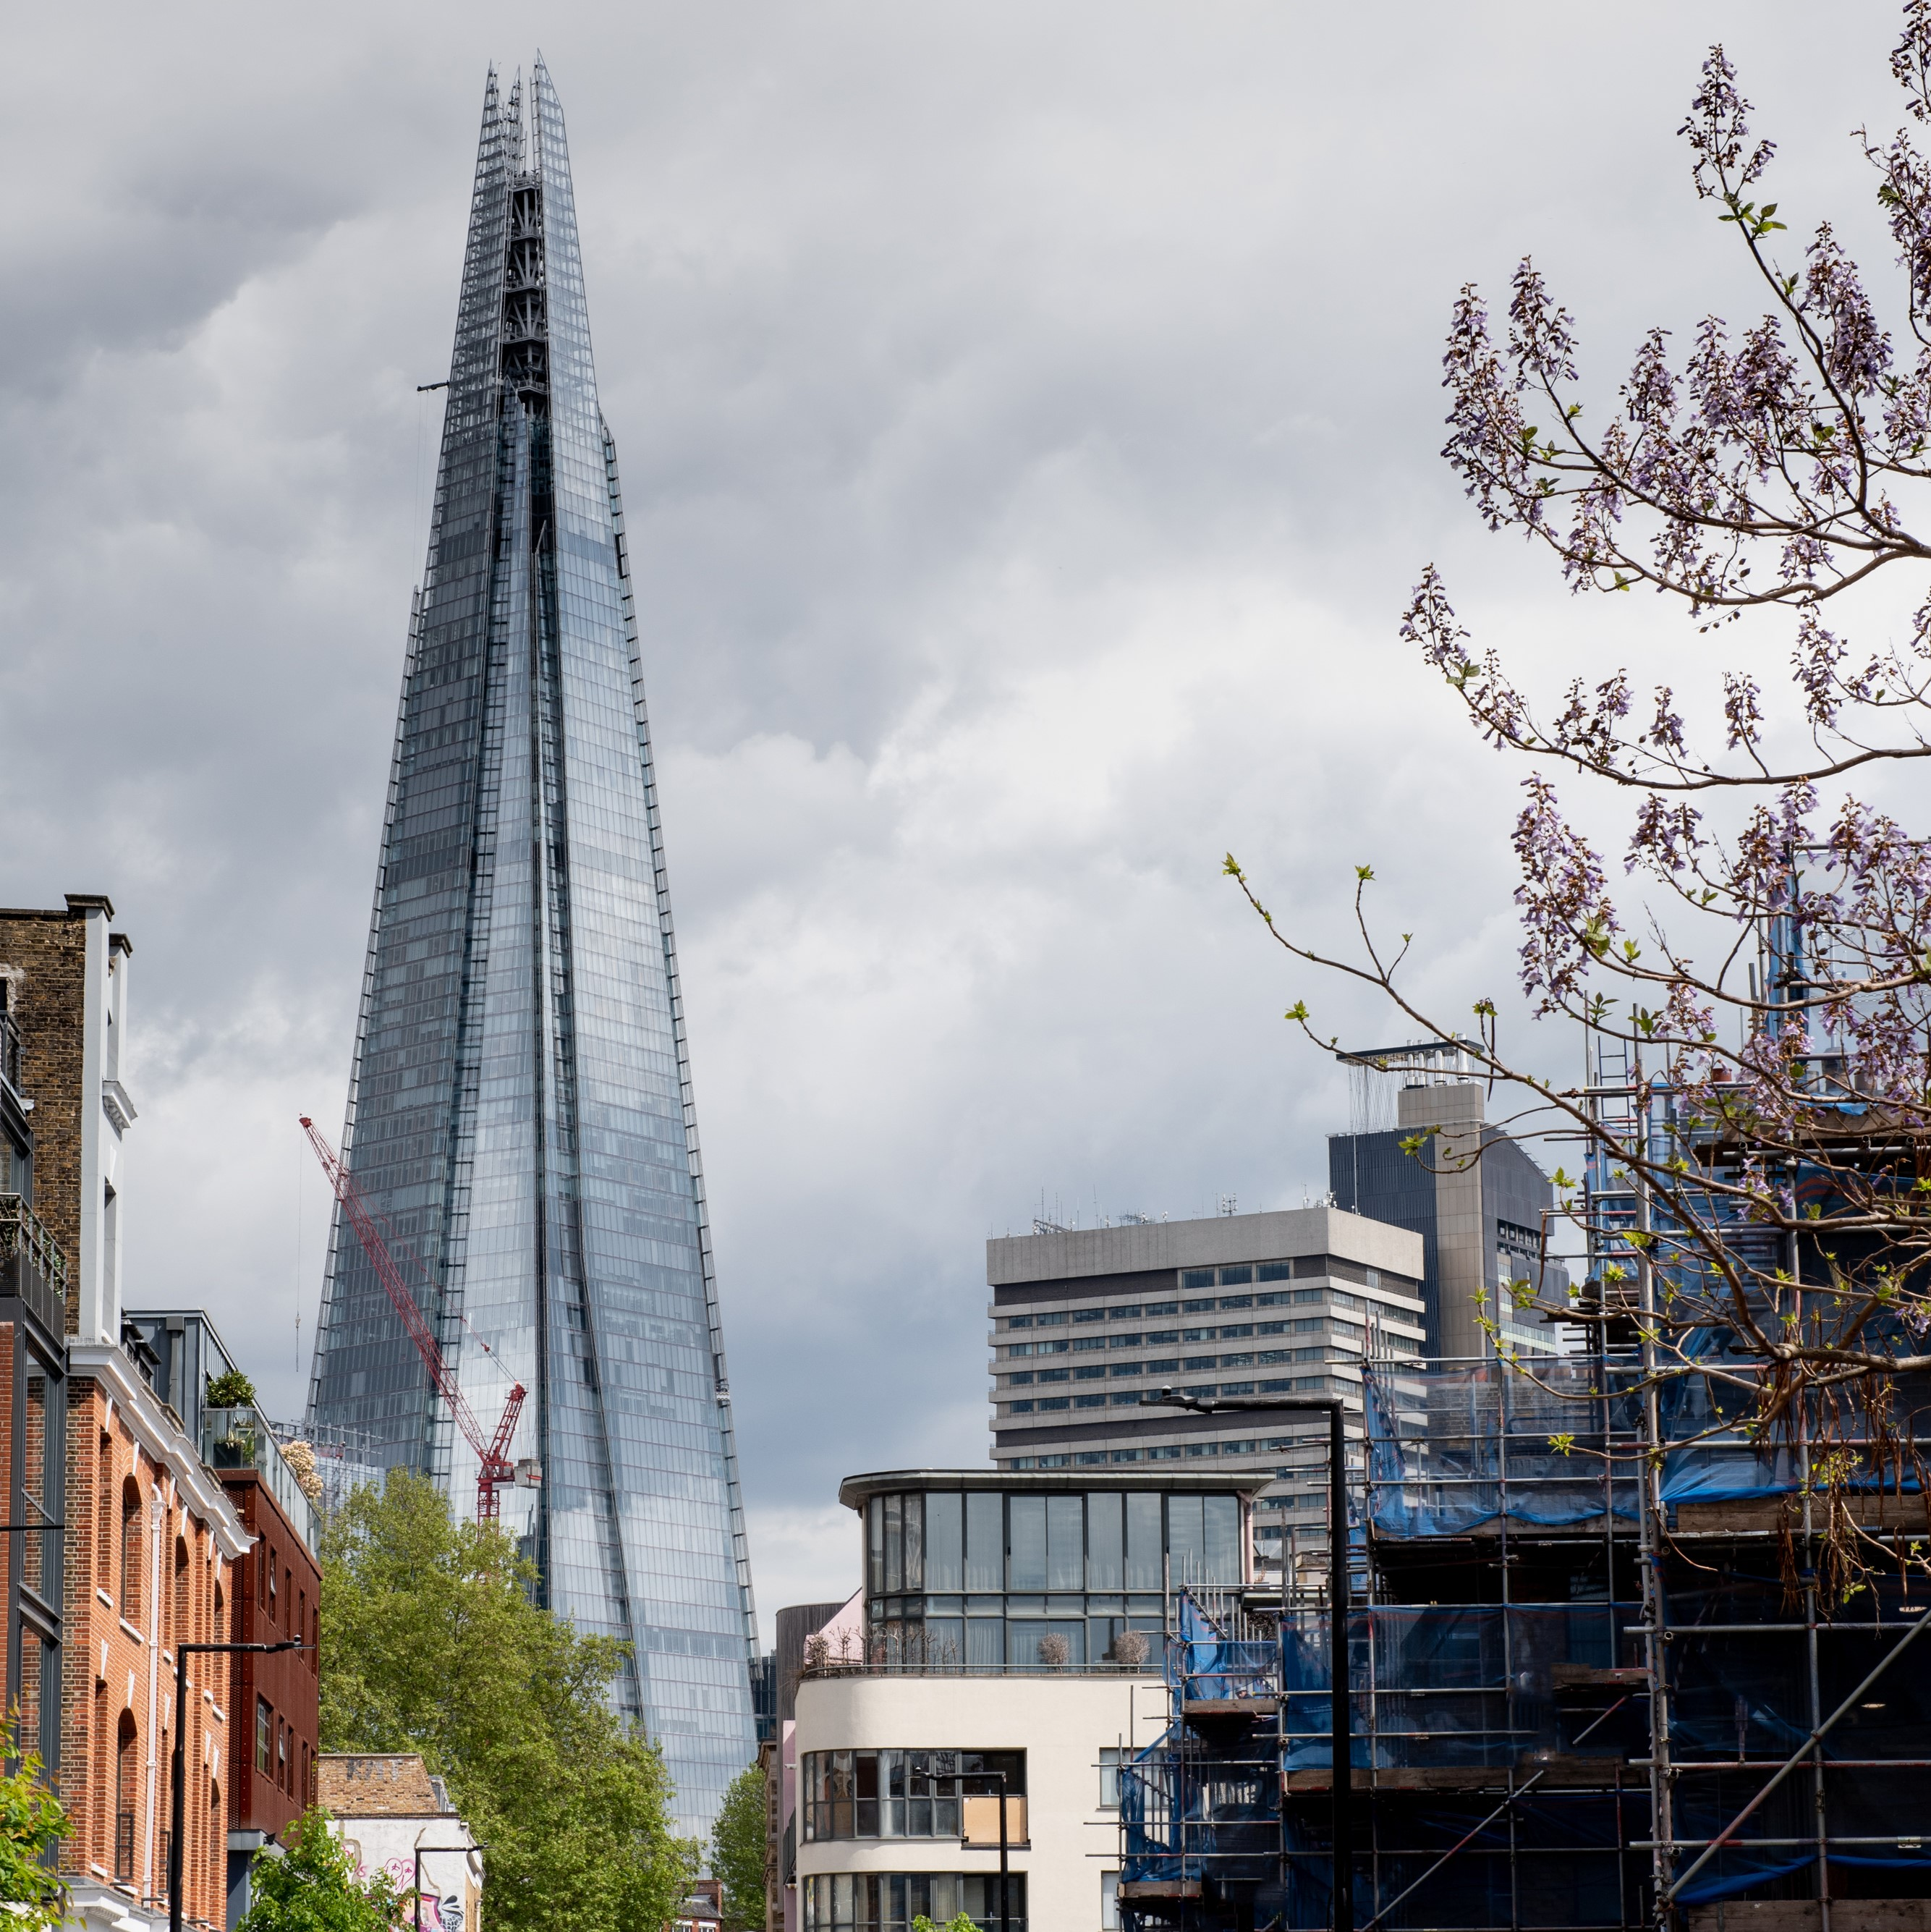 A view of the Shard from outside 169 Union Street